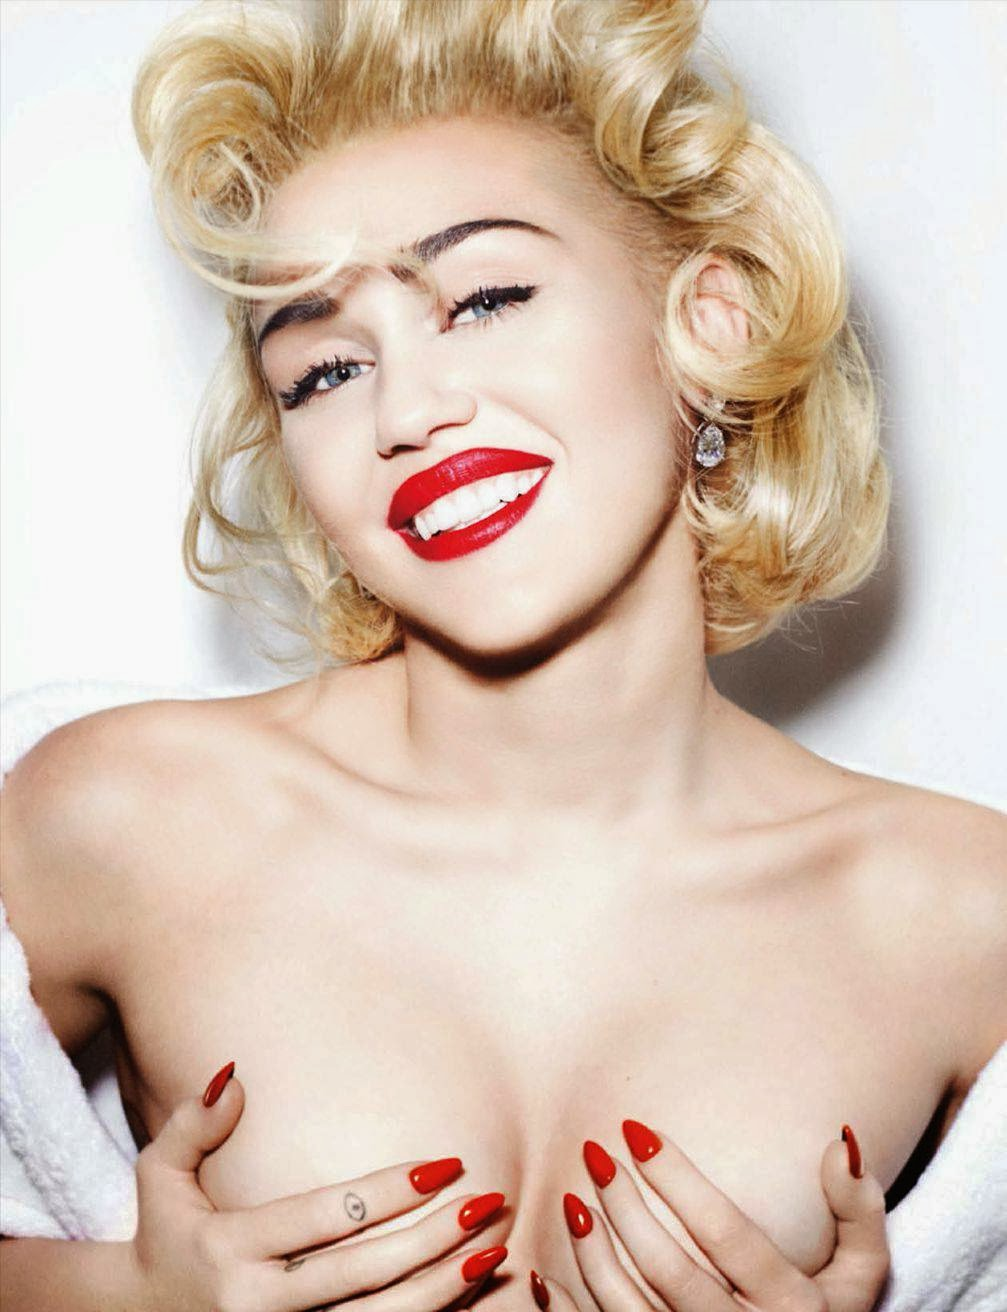 Miley Cyrus Boobs And Pussy